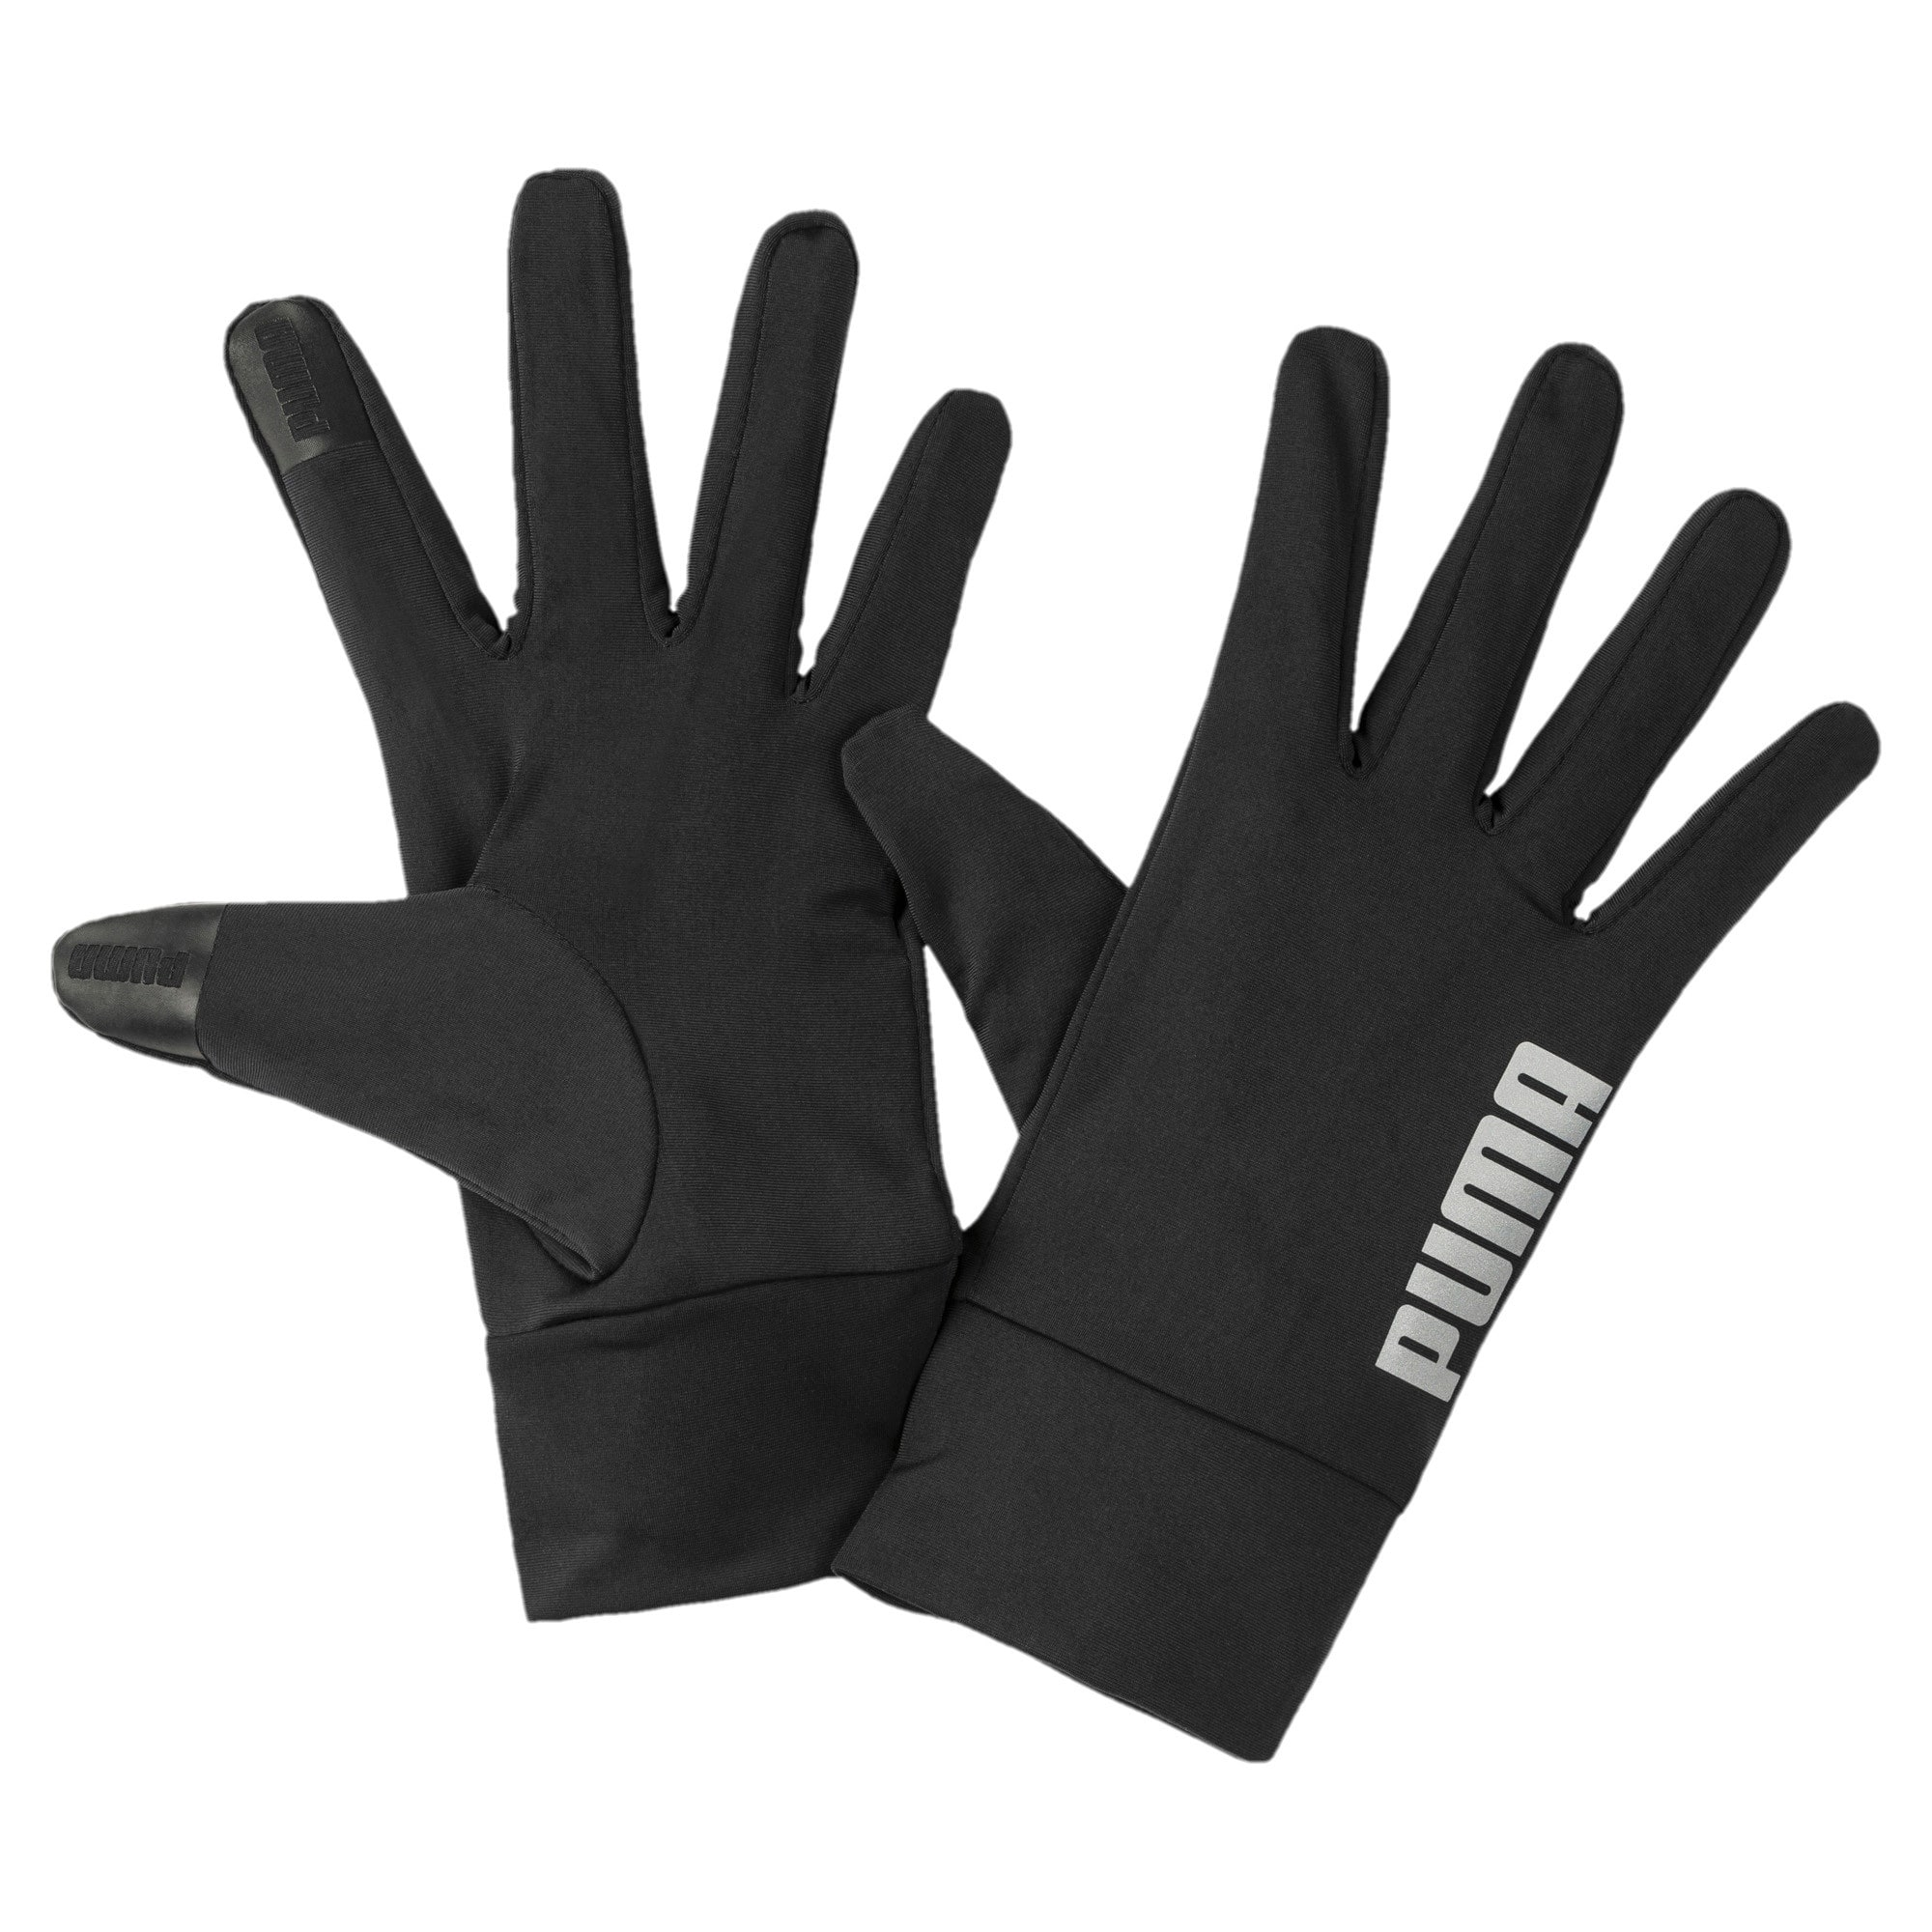 Thumbnail 1 of PR Performance Running Handschuhe, Puma Black, medium